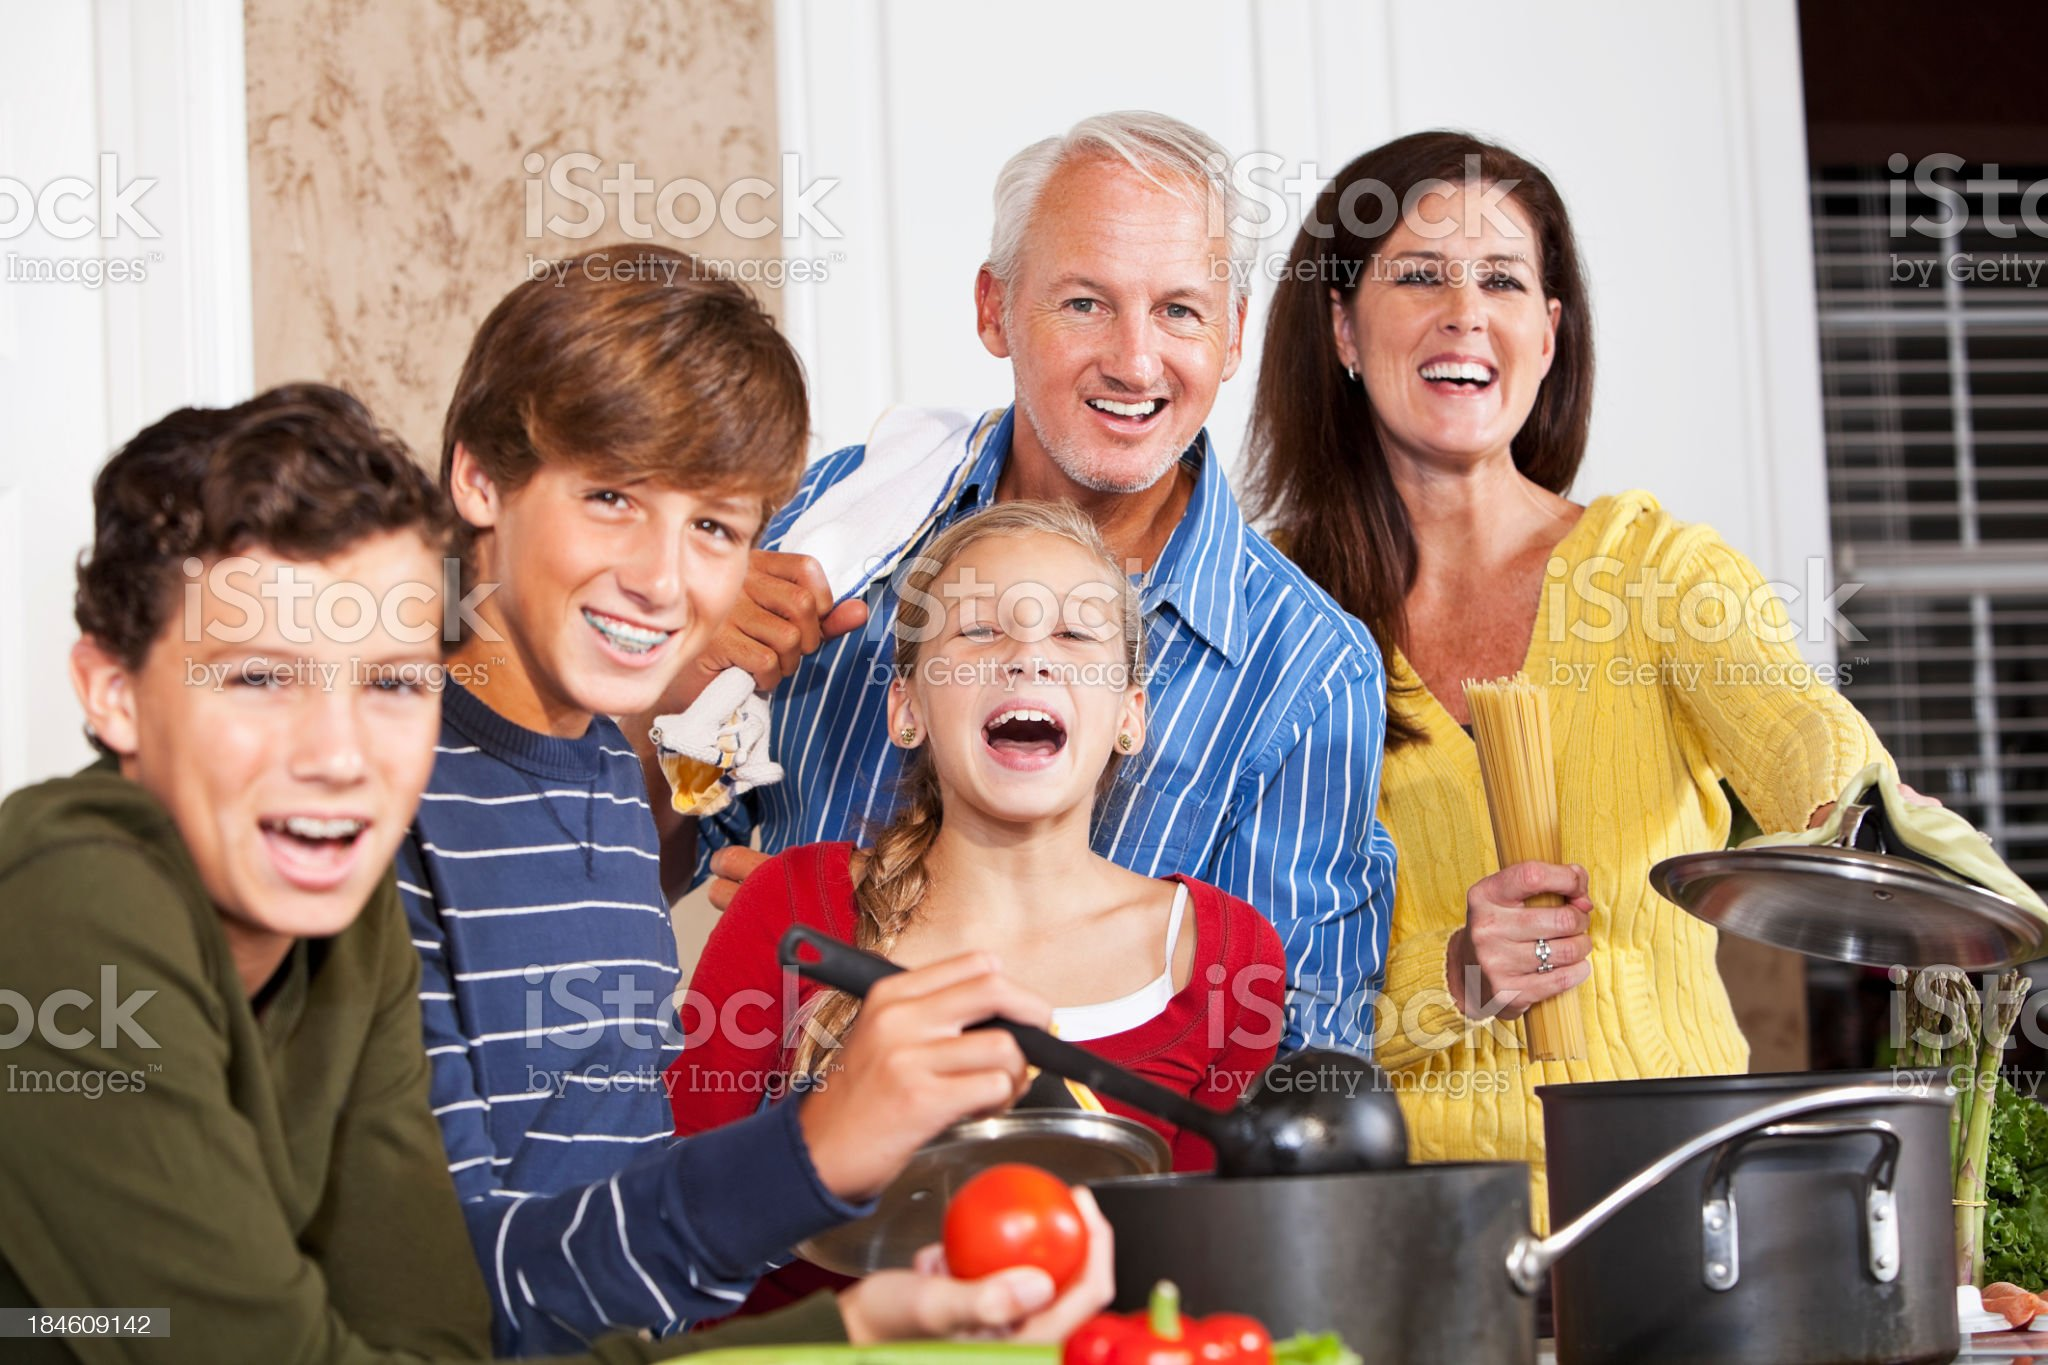 Happy family in kitchen by stove royalty-free stock photo